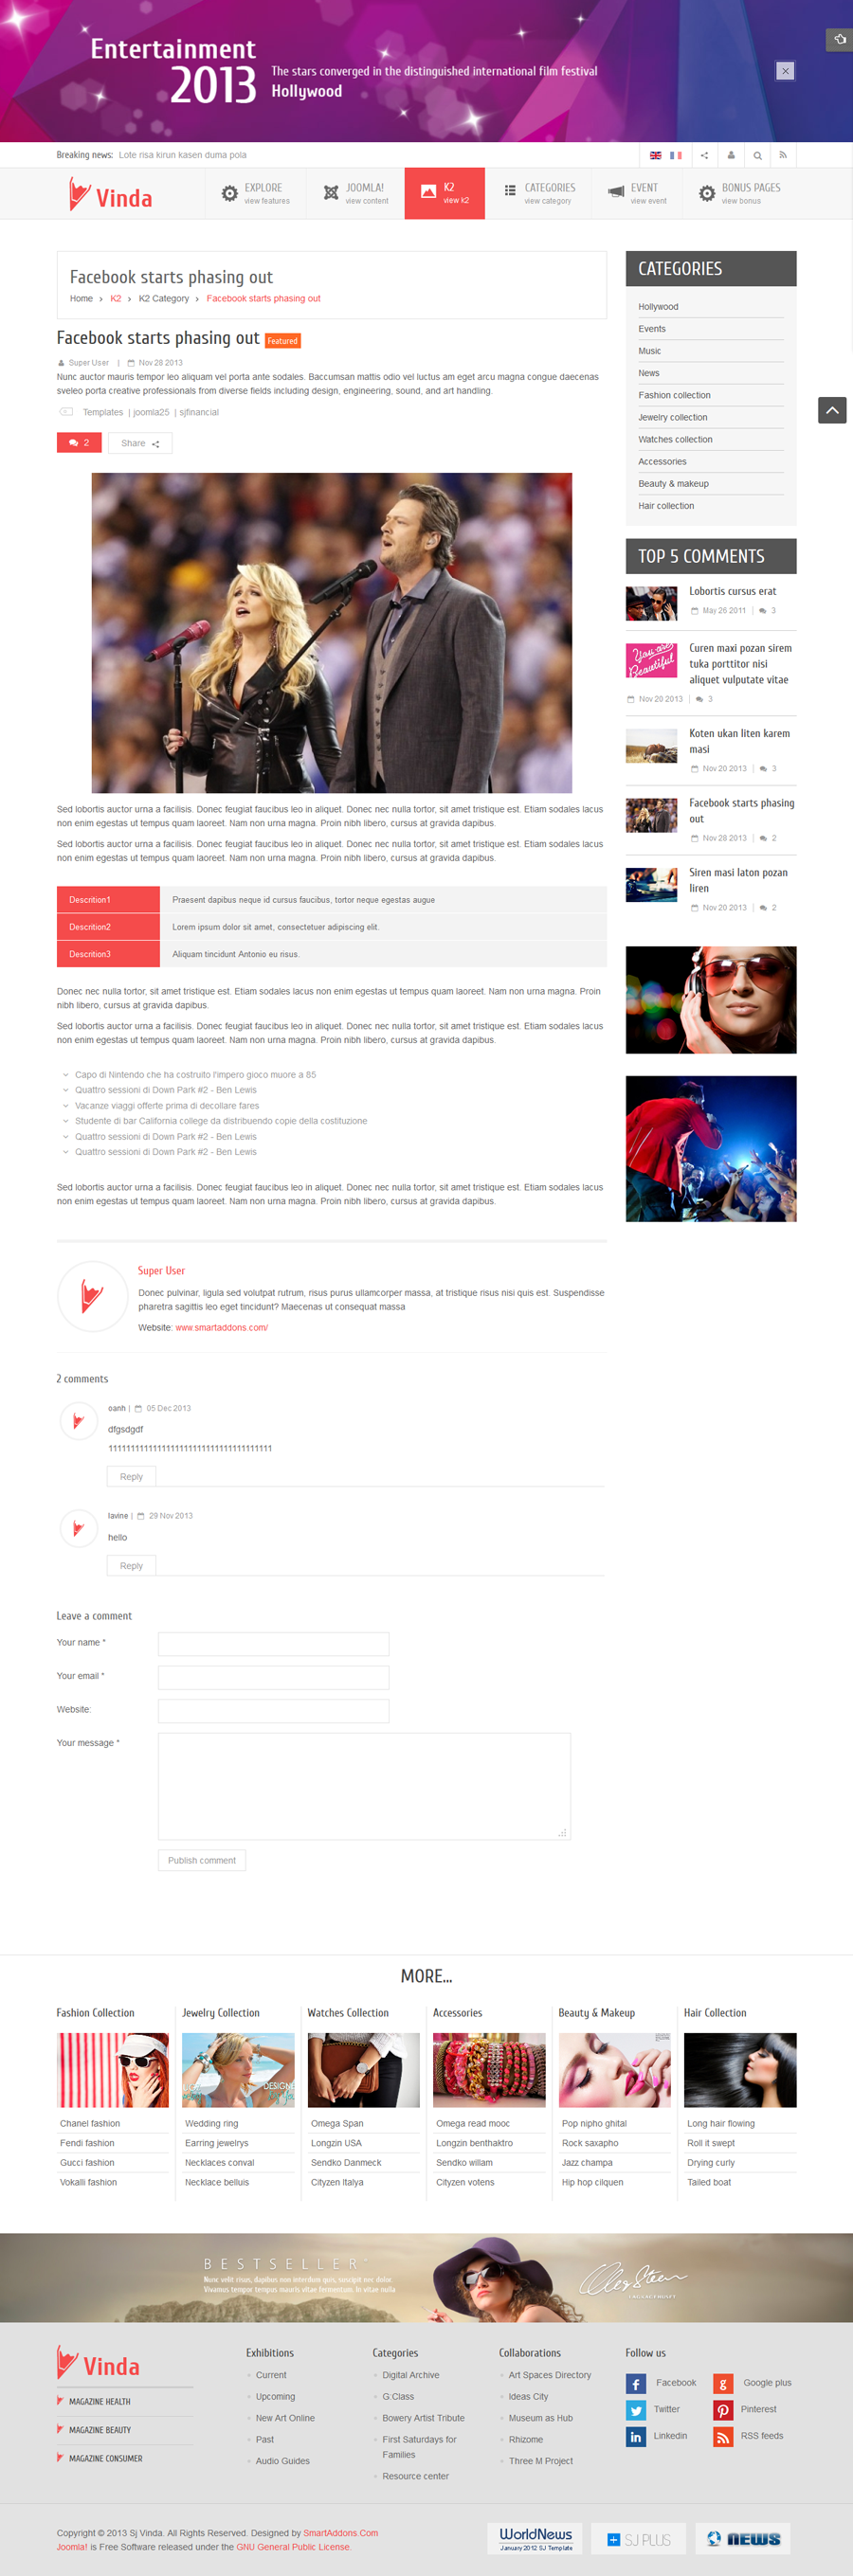 SJ Vinda - Free Joomla Entertainment Template - 09-k2-items.png